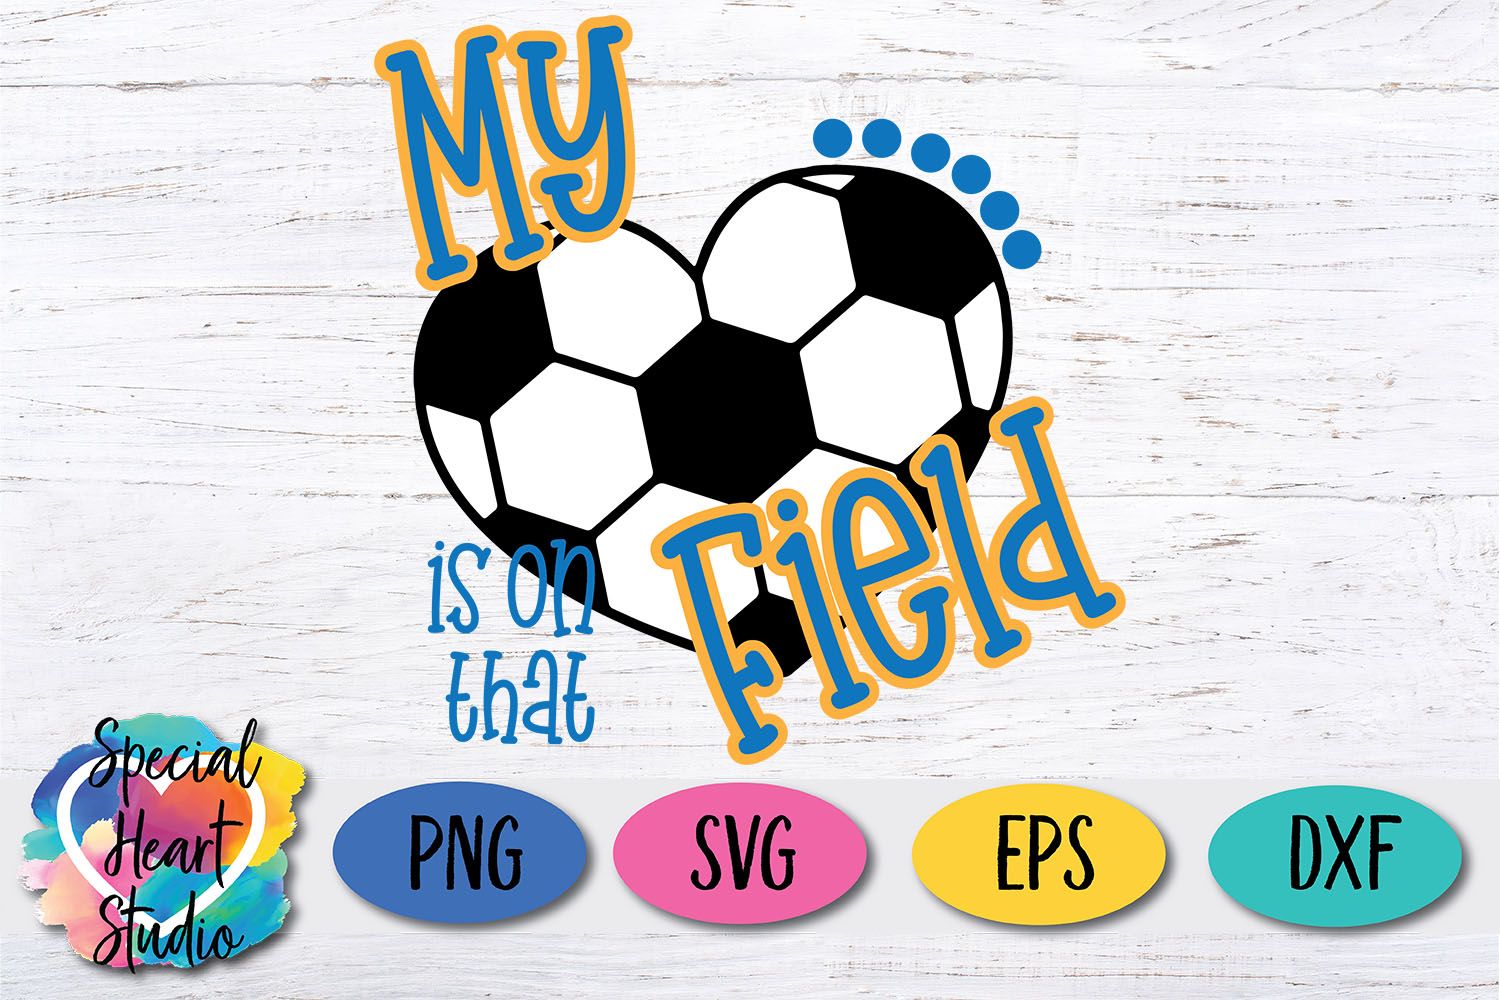 My heart is on that field - SVG - Girls Soccer cut file example image 2